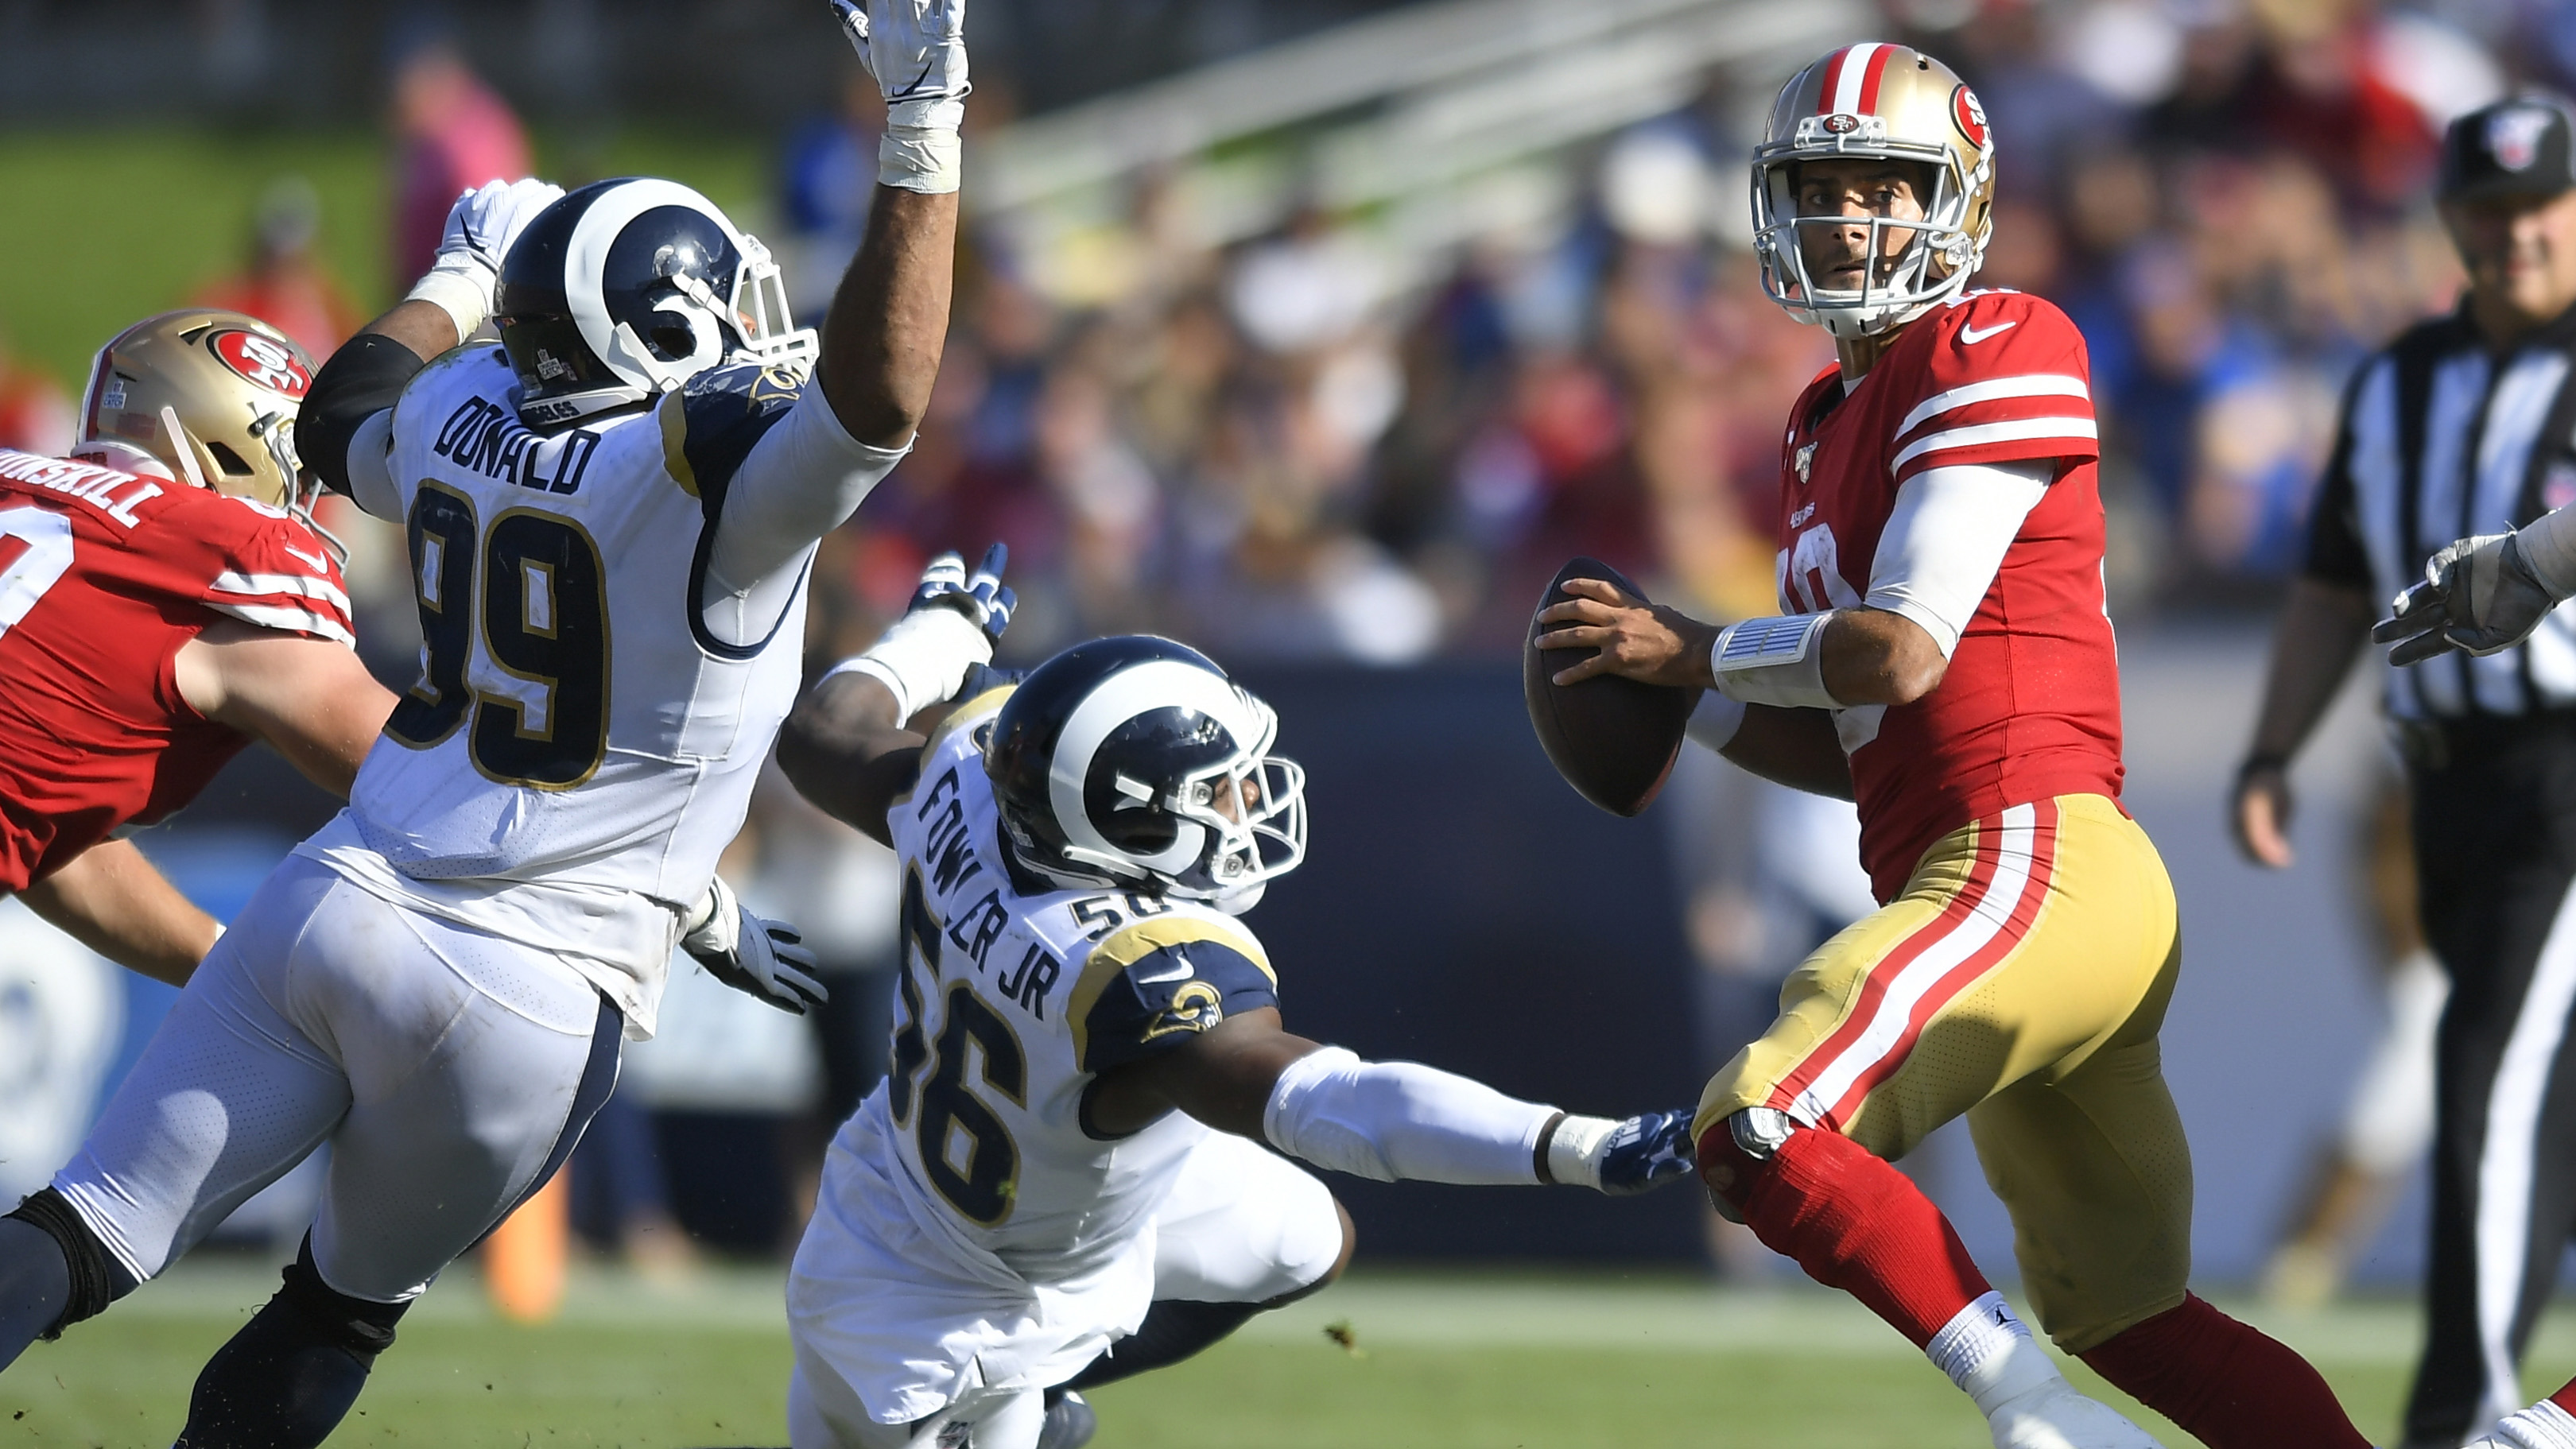 NFL Week 6 recap: 49ers stay unbeaten; Chiefs, Cowboys have issues